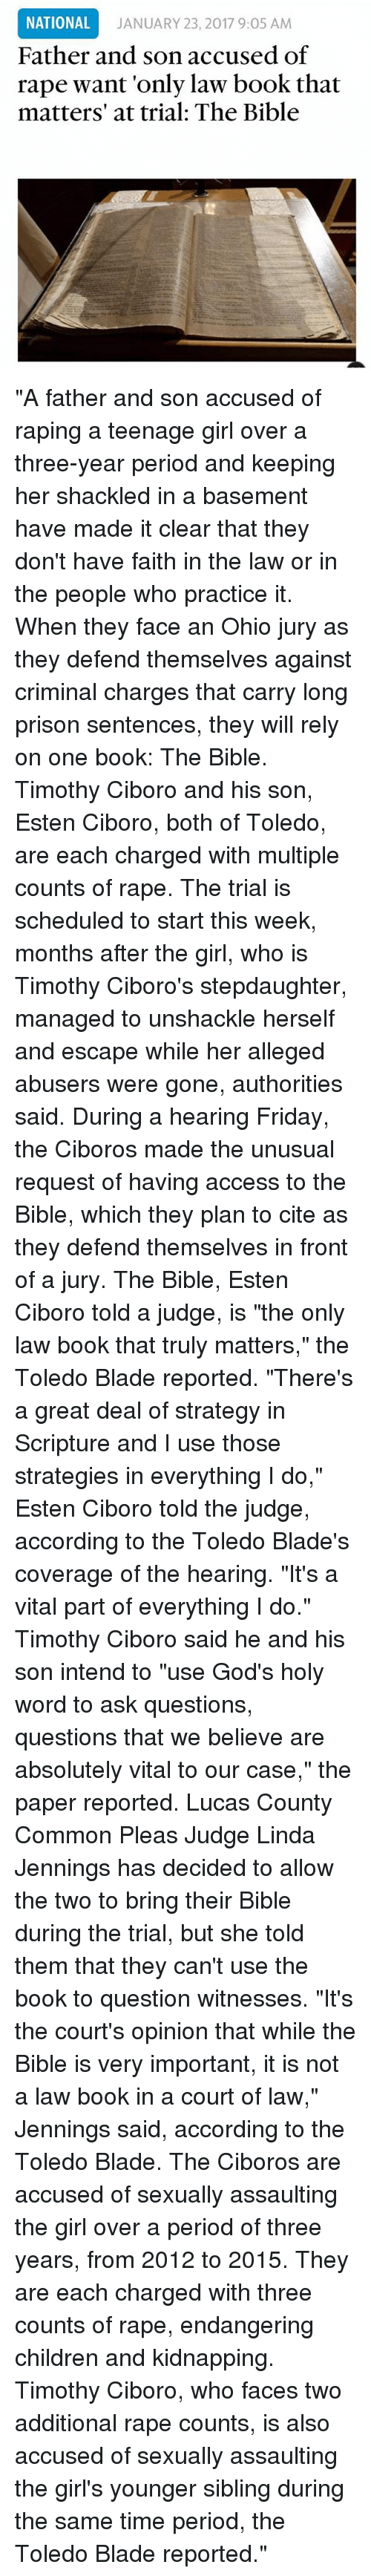 """Blade, Children, and Friday: NATIONAL  Father and son accused of  rape want 'only law book that  matters' at trial: The Bible  JANUARY 23, 2017 9:05 AM """"A father and son accused of raping a teenage girl over a three-year period and keeping her shackled in a basement have made it clear that they don't have faith in the law or in the people who practice it. When they face an Ohio jury as they defend themselves against criminal charges that carry long prison sentences, they will rely on one book: The Bible. Timothy Ciboro and his son, Esten Ciboro, both of Toledo, are each charged with multiple counts of rape. The trial is scheduled to start this week, months after the girl, who is Timothy Ciboro's stepdaughter, managed to unshackle herself and escape while her alleged abusers were gone, authorities said. During a hearing Friday, the Ciboros made the unusual request of having access to the Bible, which they plan to cite as they defend themselves in front of a jury. The Bible, Esten Ciboro told a judge, is """"the only law book that truly matters,"""" the Toledo Blade reported. """"There's a great deal of strategy in Scripture and I use those strategies in everything I do,"""" Esten Ciboro told the judge, according to the Toledo Blade's coverage of the hearing. """"It's a vital part of everything I do."""" Timothy Ciboro said he and his son intend to """"use God's holy word to ask questions, questions that we believe are absolutely vital to our case,"""" the paper reported. Lucas County Common Pleas Judge Linda Jennings has decided to allow the two to bring their Bible during the trial, but she told them that they can't use the book to question witnesses. """"It's the court's opinion that while the Bible is very important, it is not a law book in a court of law,"""" Jennings said, according to the Toledo Blade. The Ciboros are accused of sexually assaulting the girl over a period of three years, from 2012 to 2015. They are each charged with three counts of rape, endangering children and kidnapping. """